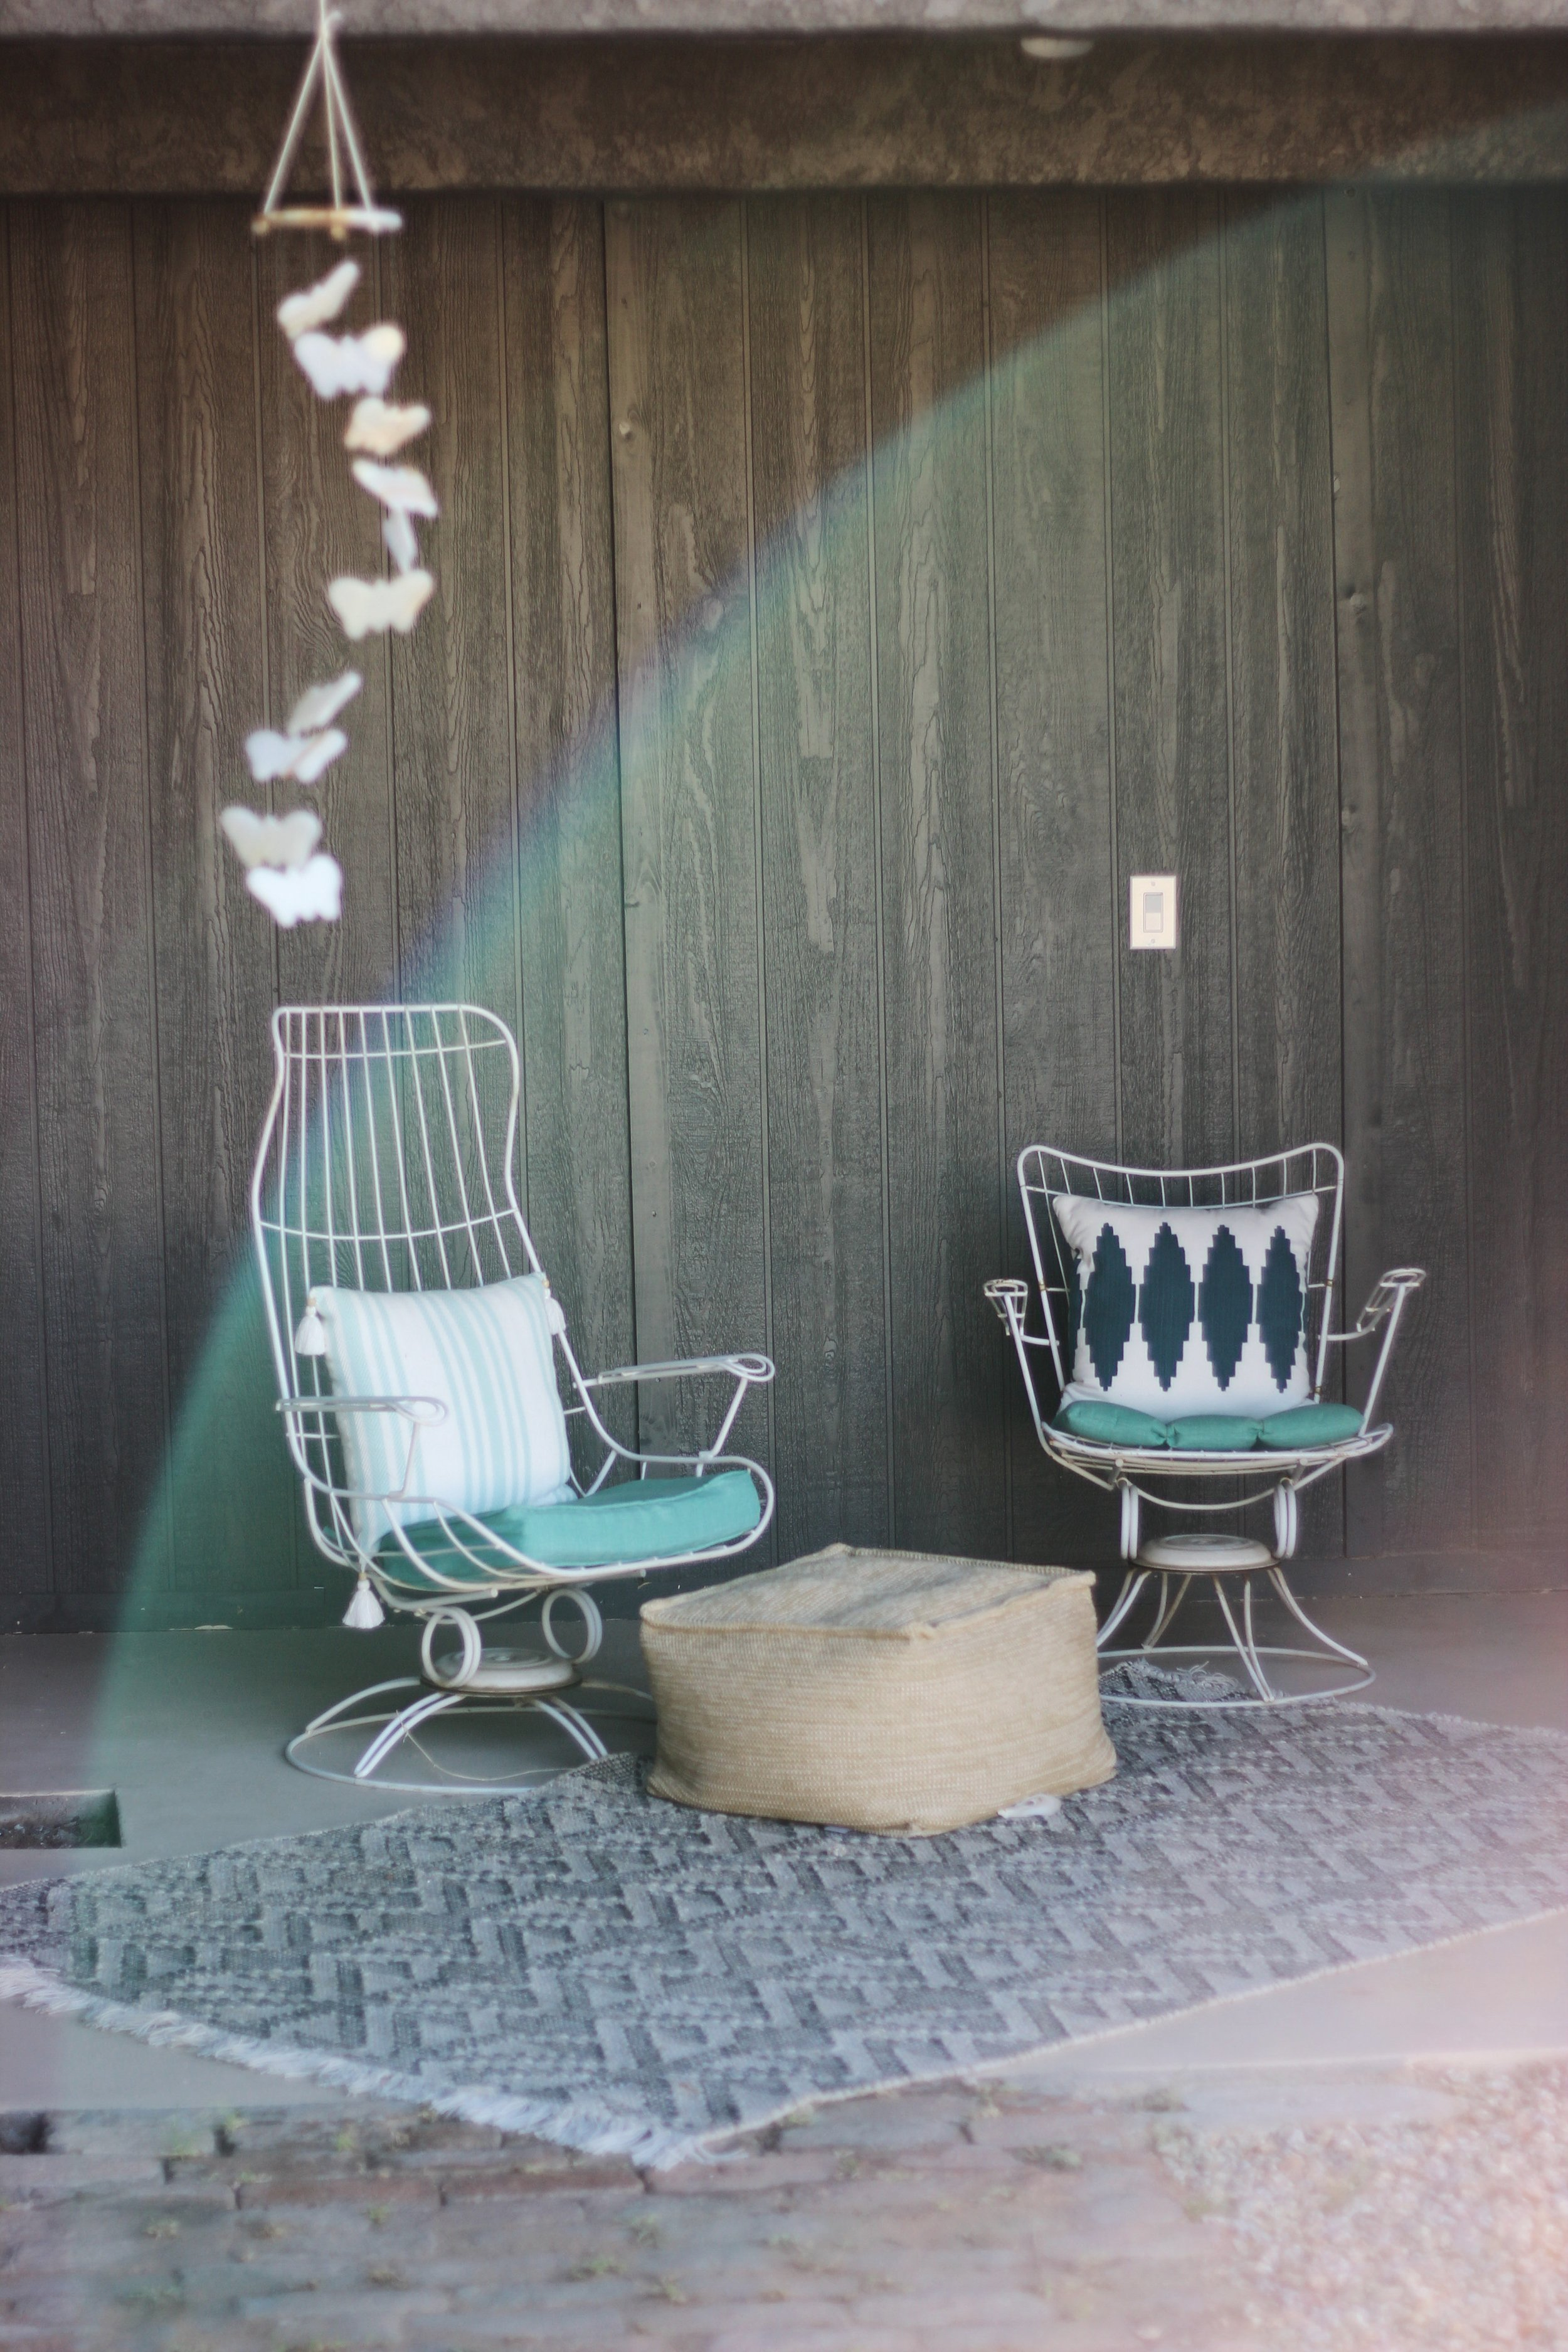 Vintage Homecrest chairs on patio